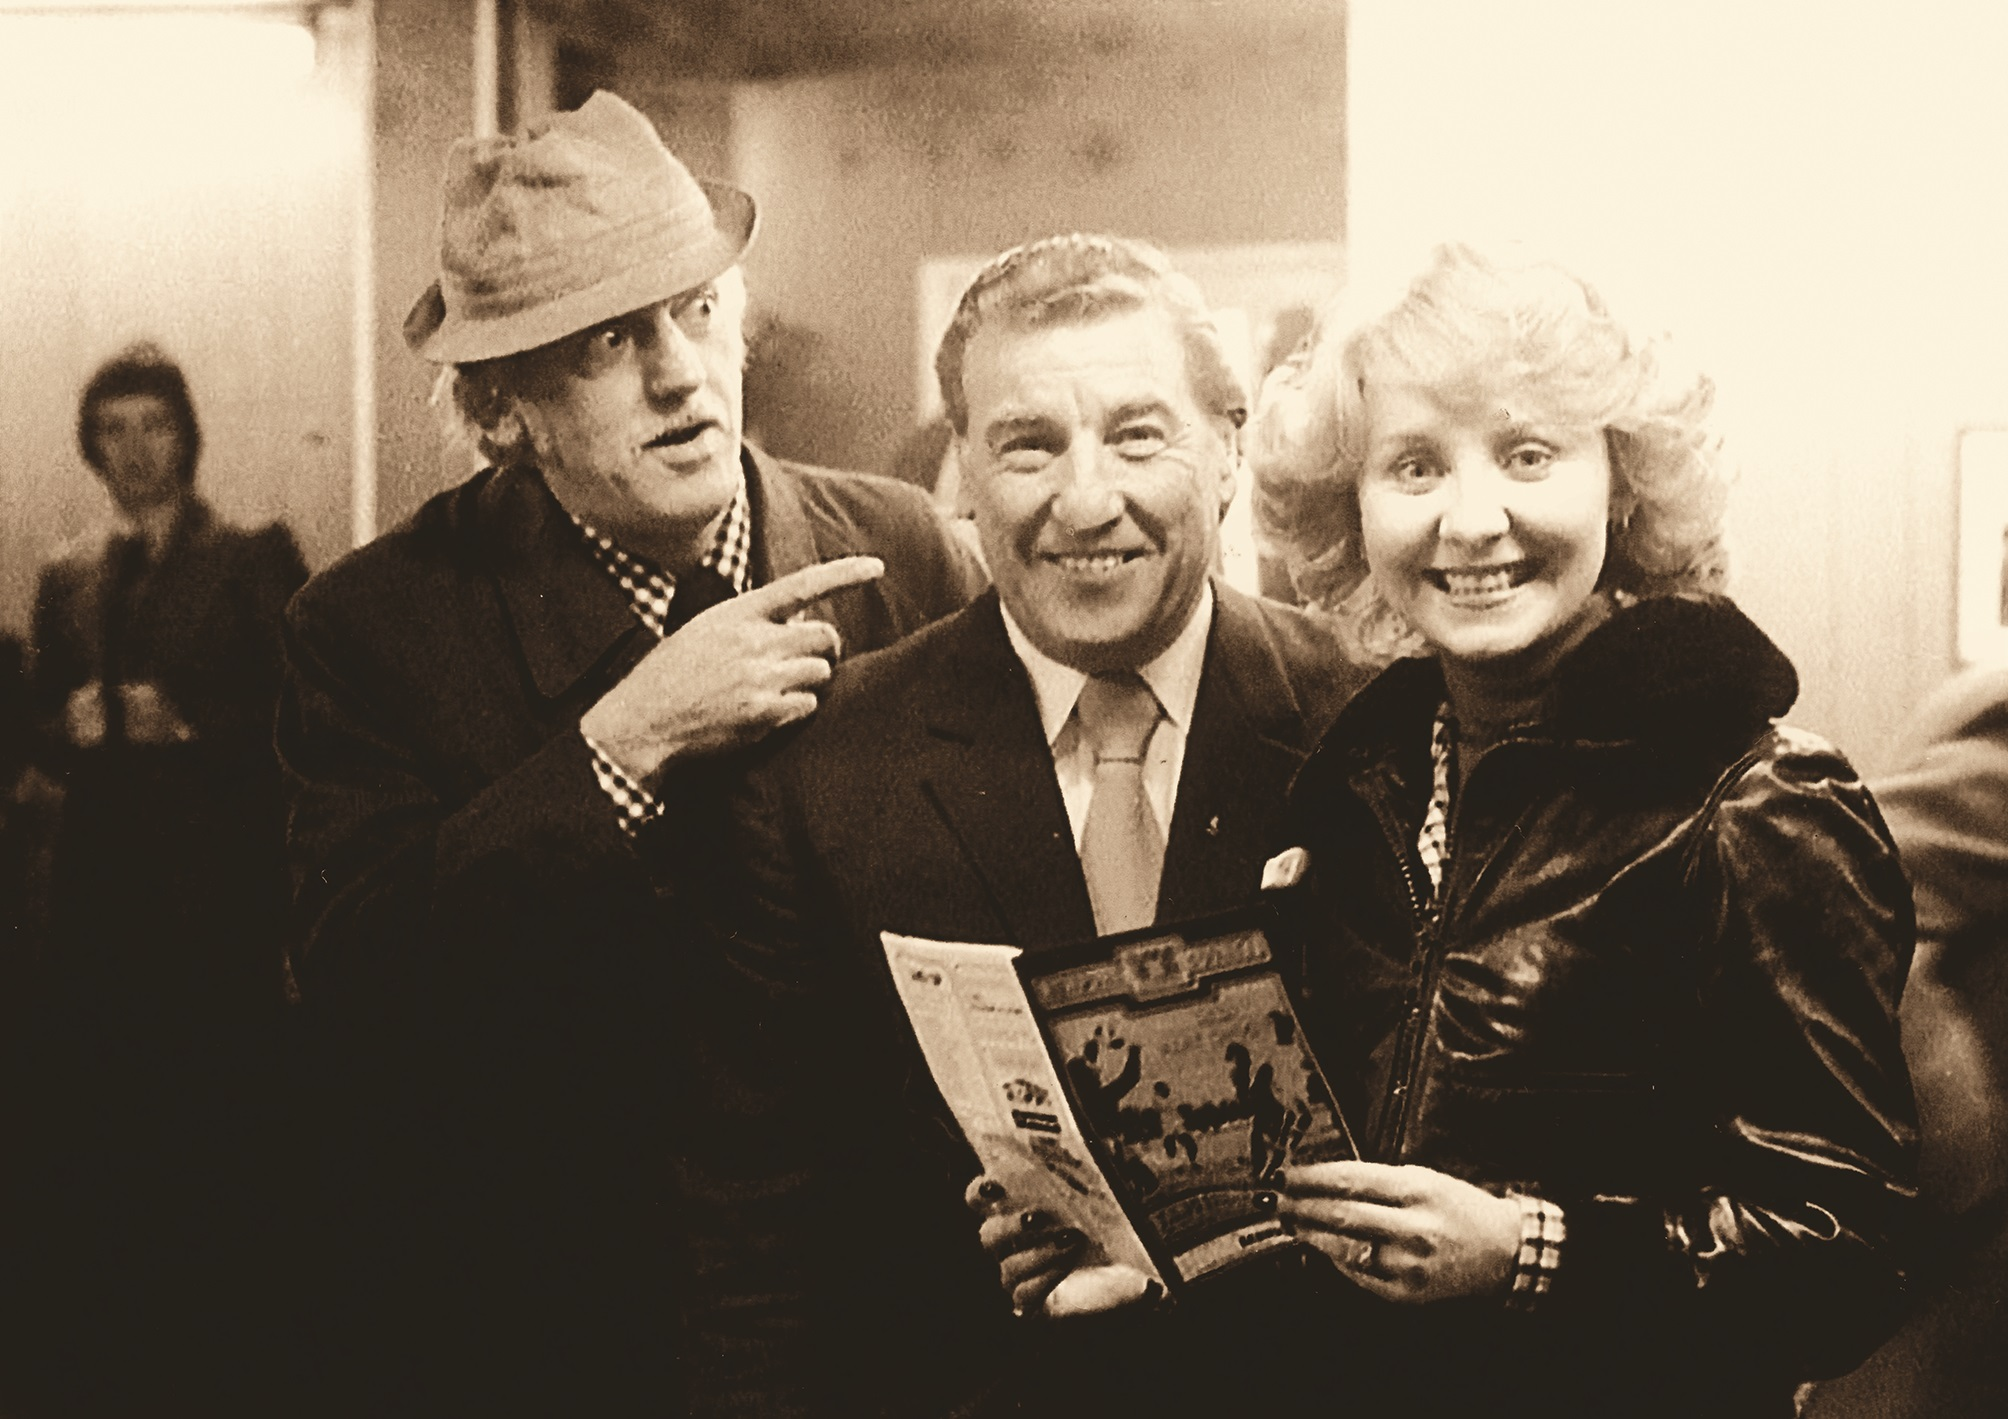 Showbusiness stars Lulu and Stan Stennett join Newport County AFC chairman Cyril Rodgers for a half-time photo opportunity in the 1970s from Jan Preece's book,  Now That's What I Call Newport , published by Amberley.